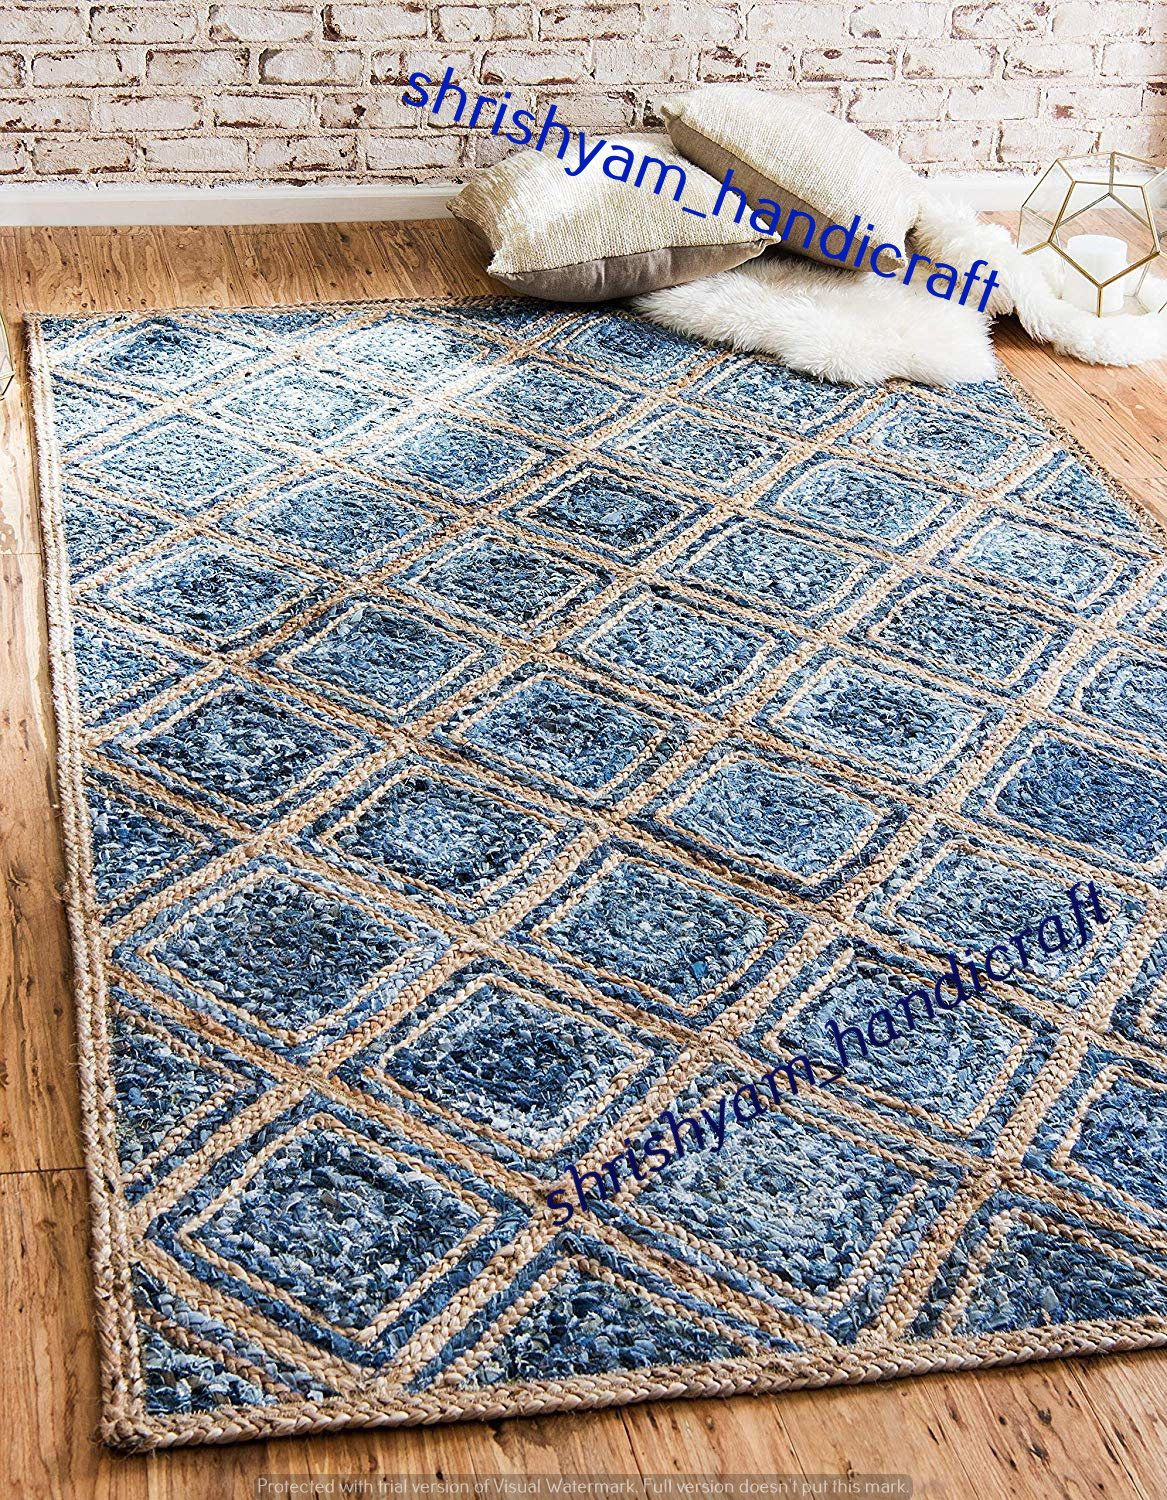 Indian Braided Jute Rug Rag Blue Color Floor Decor Rugs Hand Woven